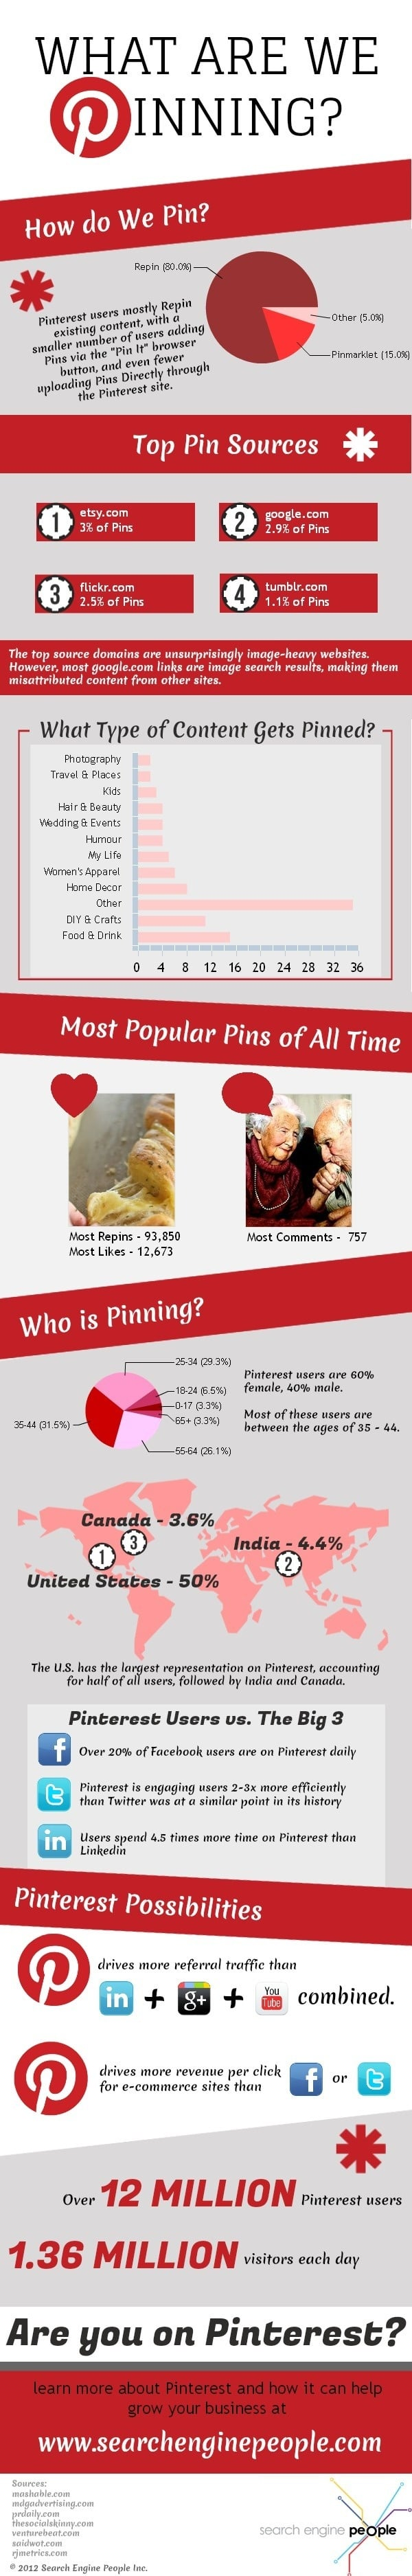 pinterest-update-usage-statistics-infographic